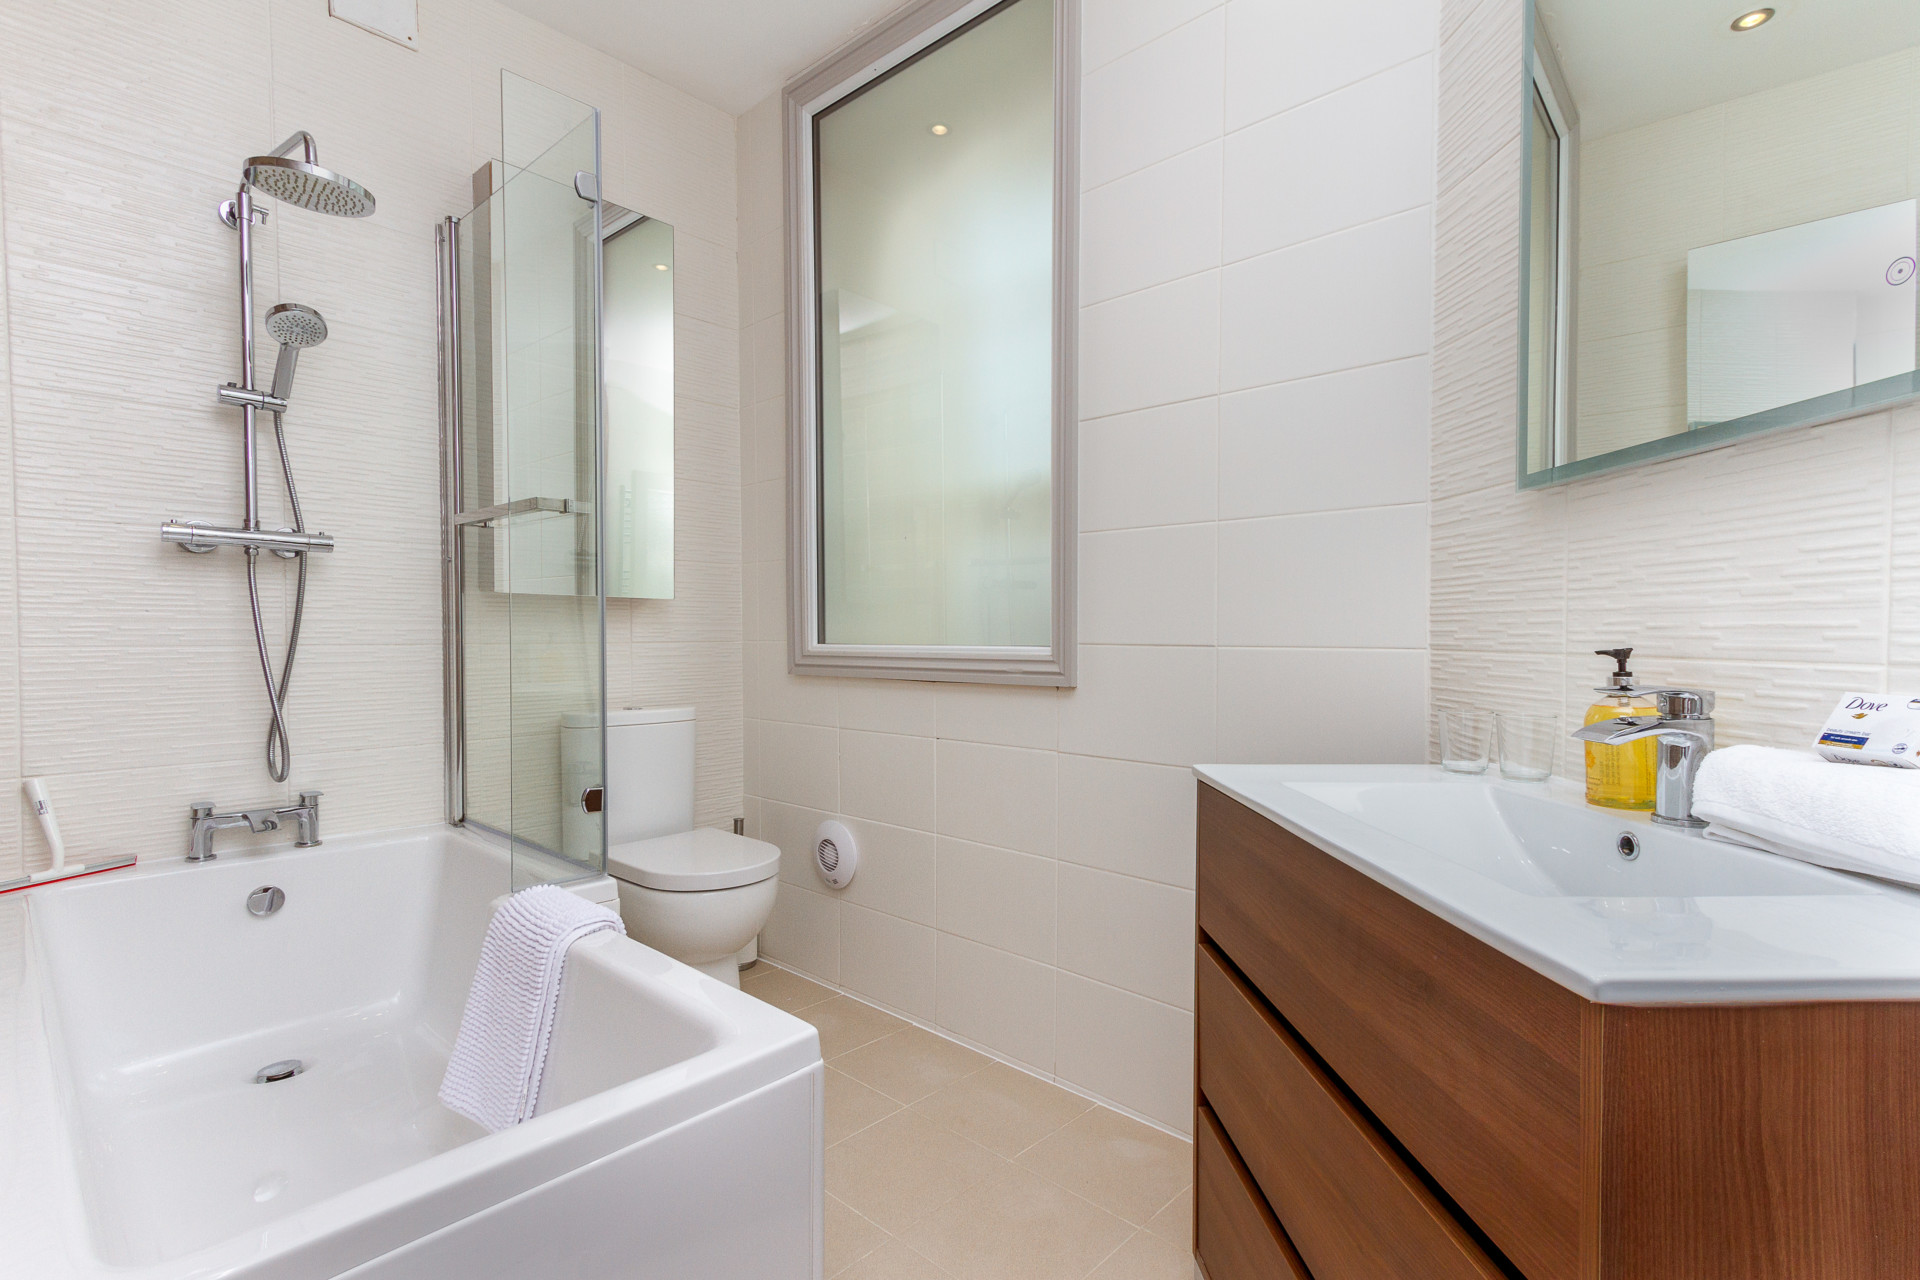 Bathroom with shower over bath, wc, and vanity basin unit